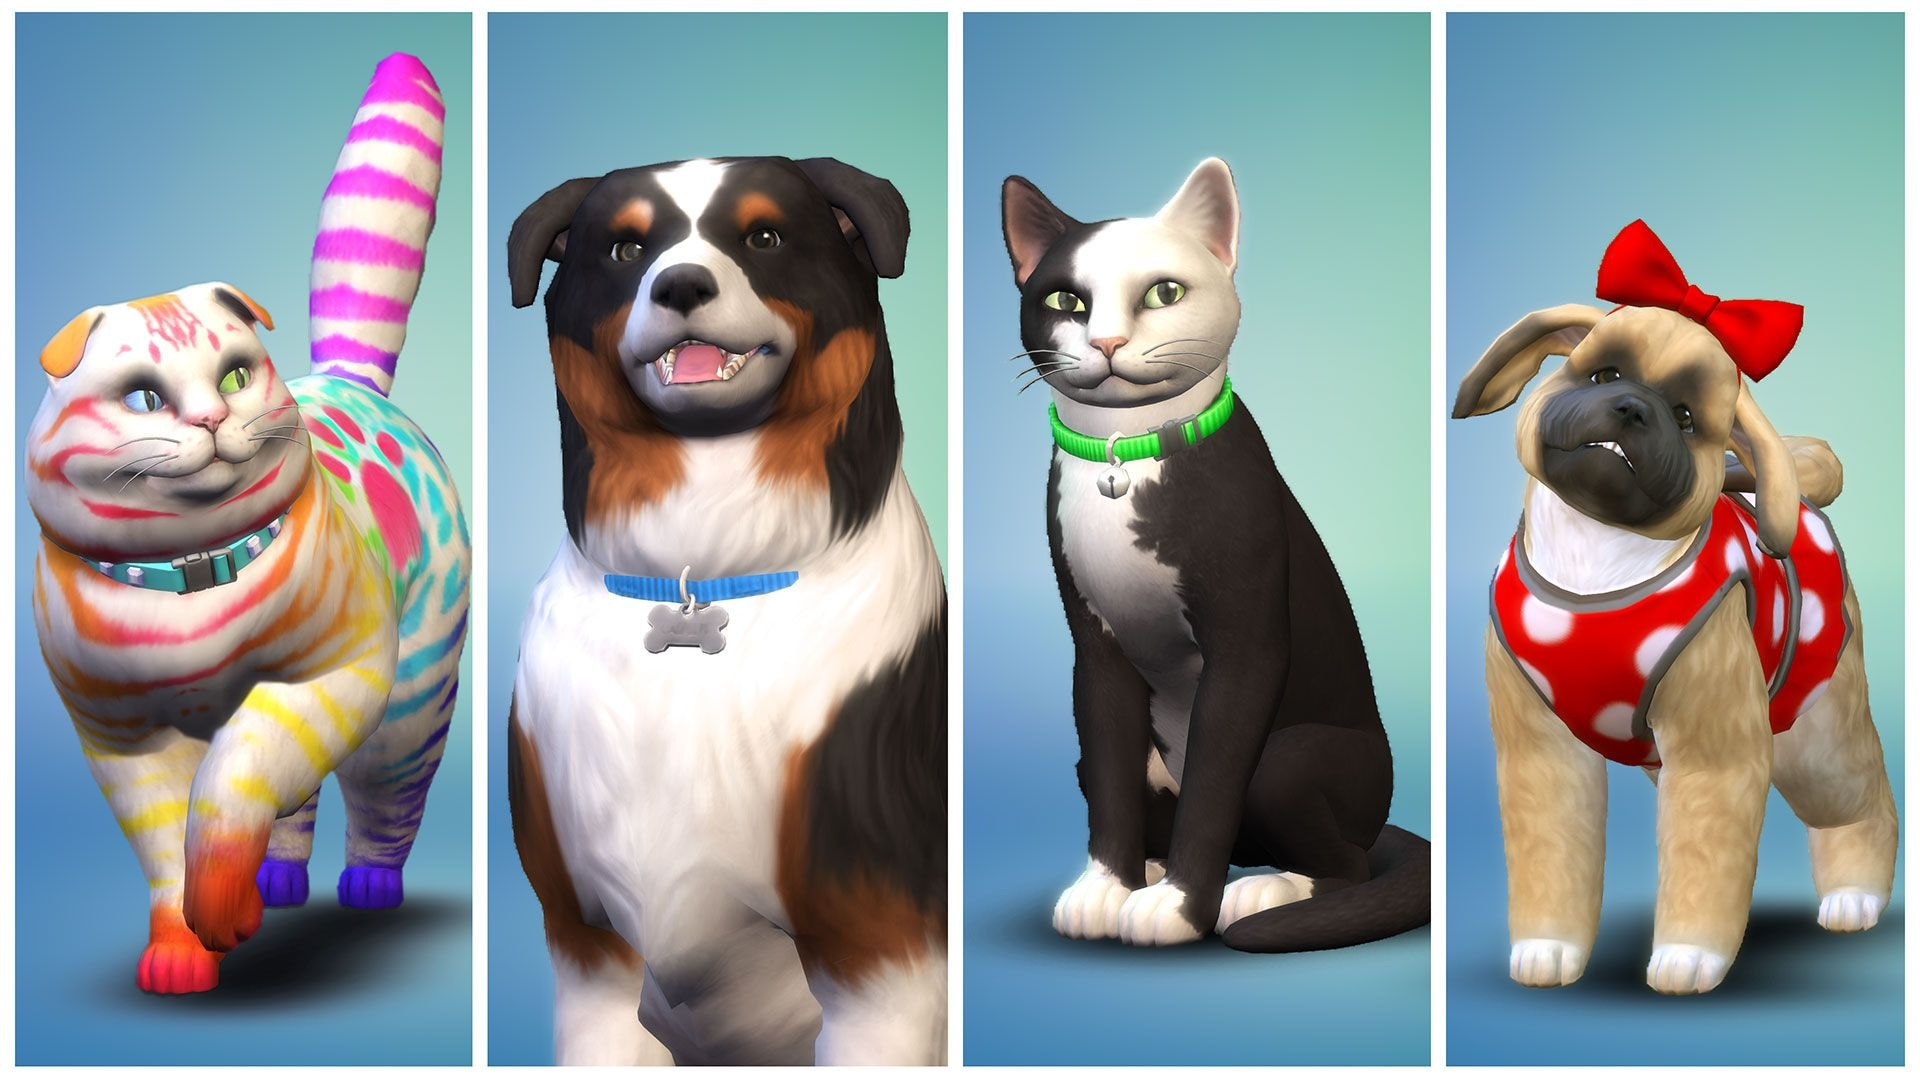 The Sims 4: Cats & Dogs Origin PC Key GLOBAL - 3